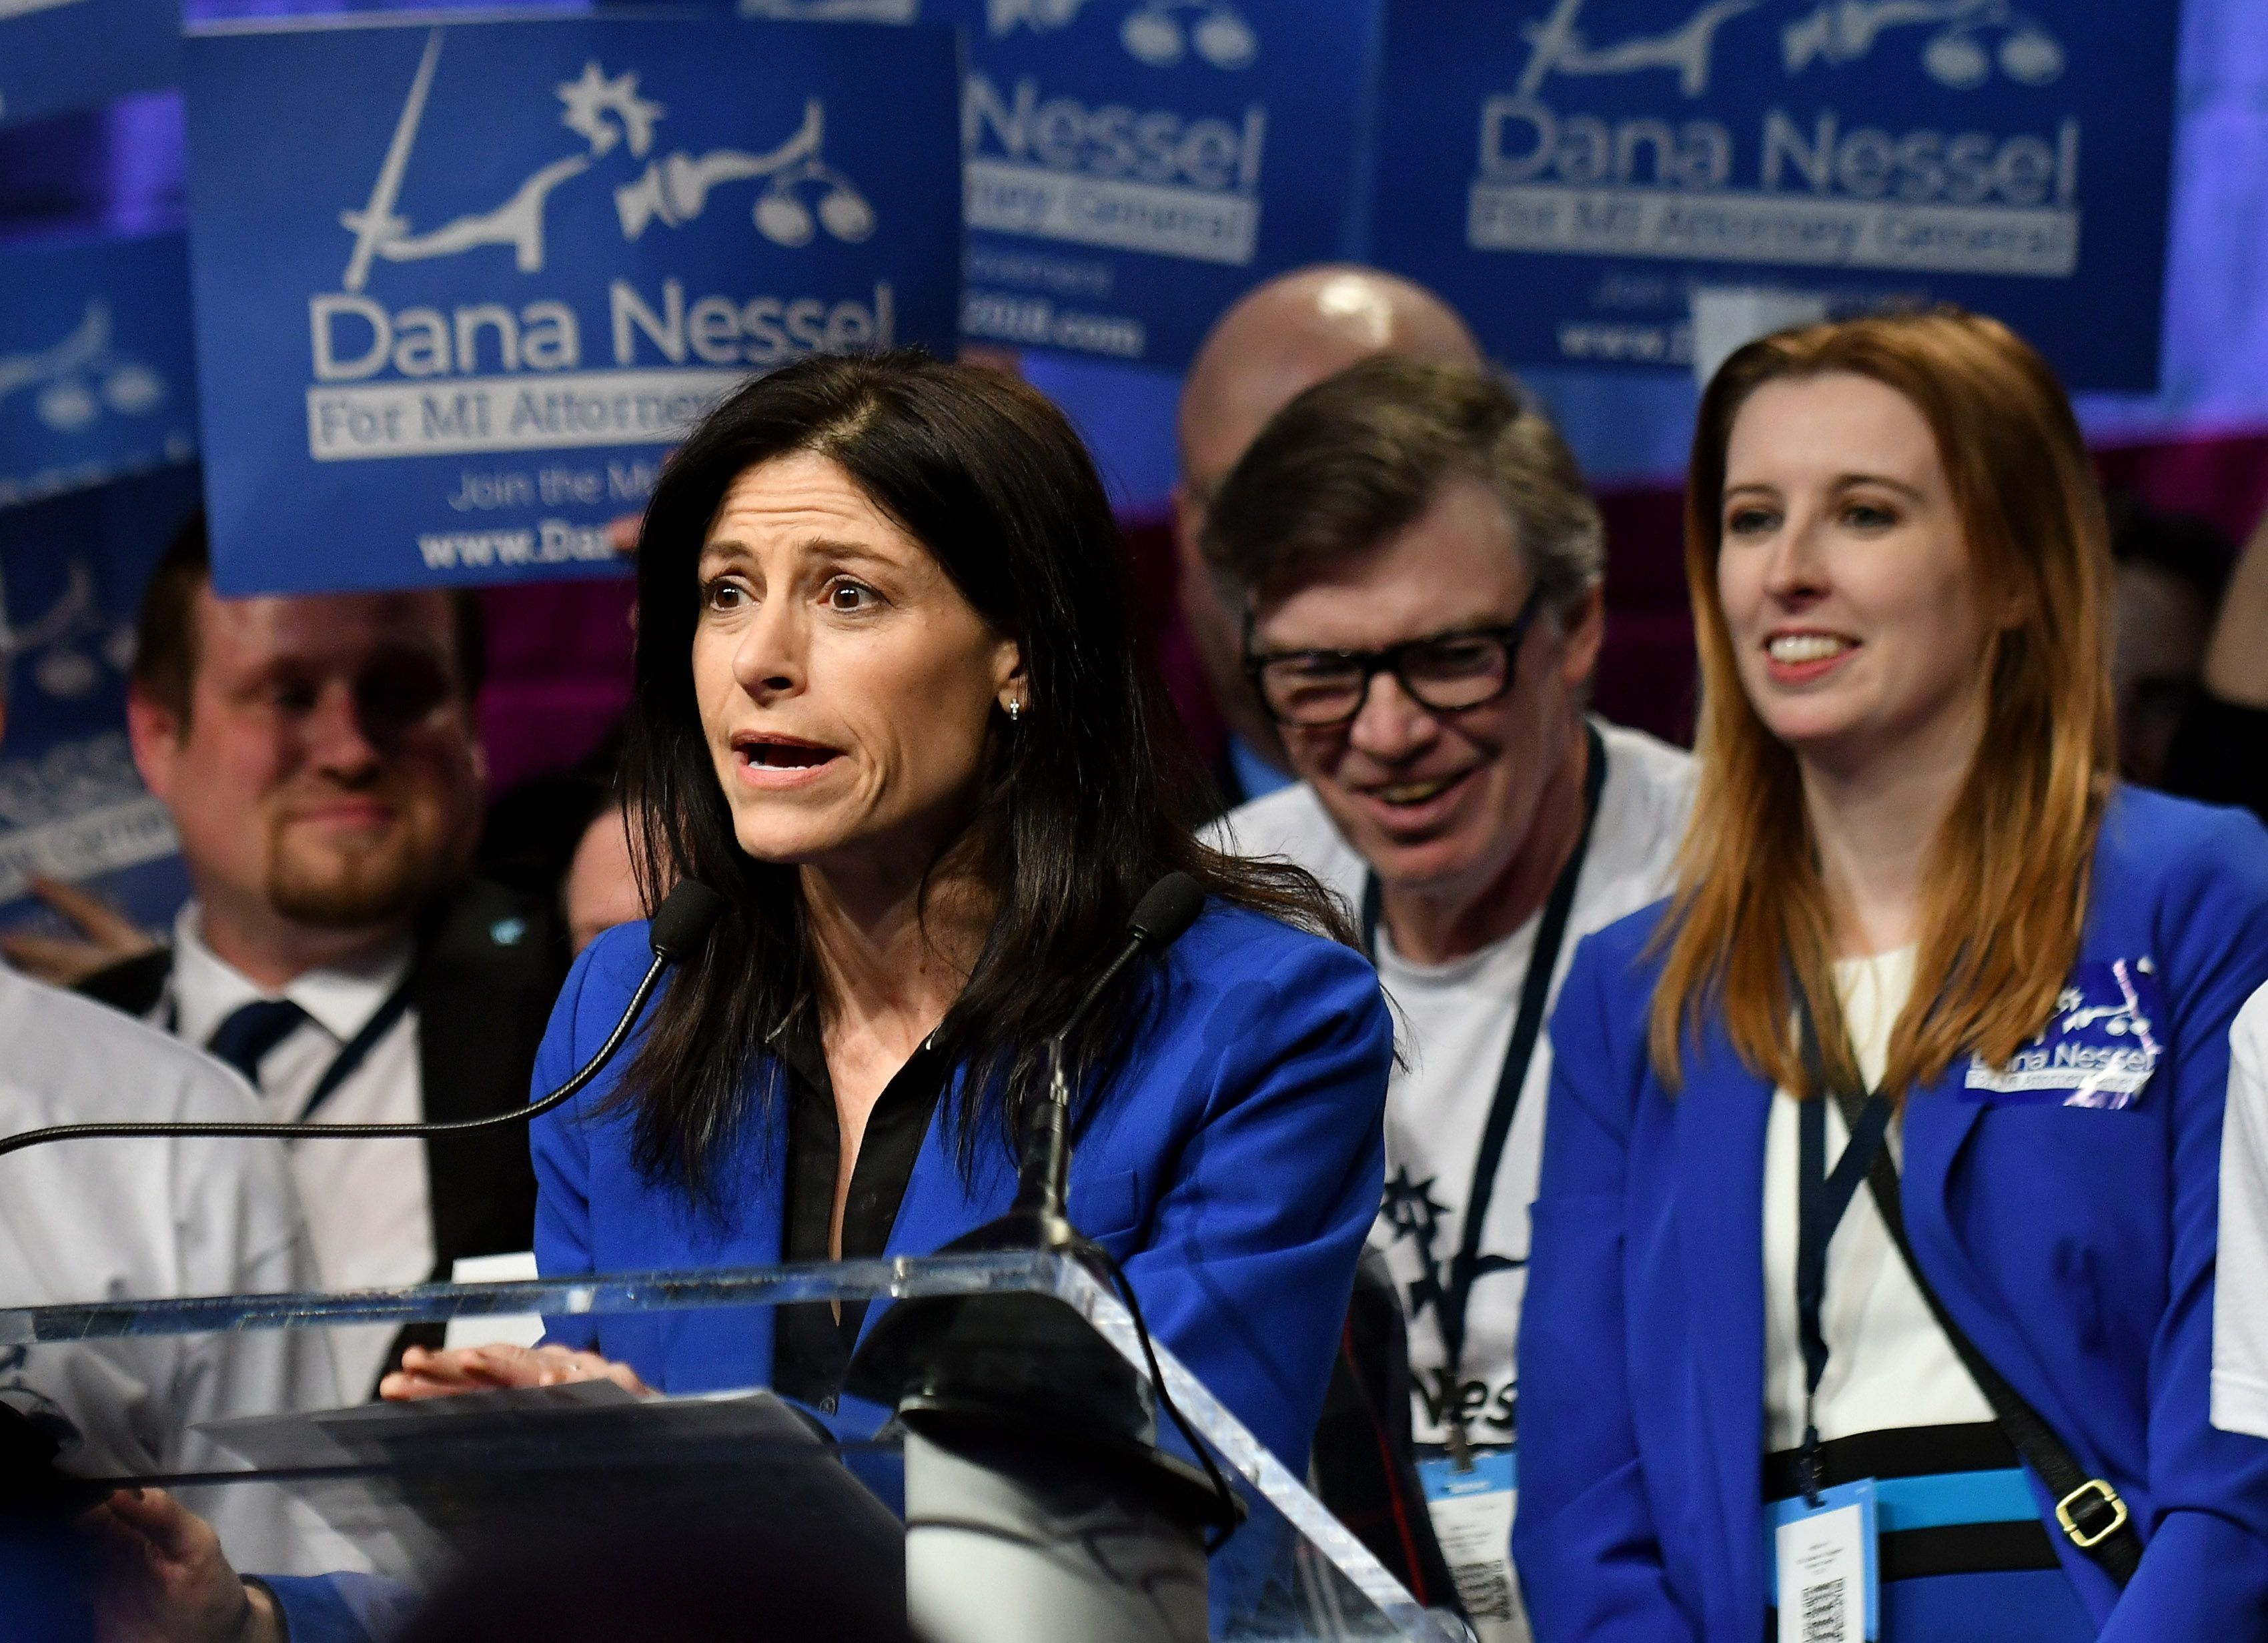 Democratic candidate for state attorney general Dana Nessel is a Plymouth Township attorney best known for her role in overturning the state's same sex marriage ban.